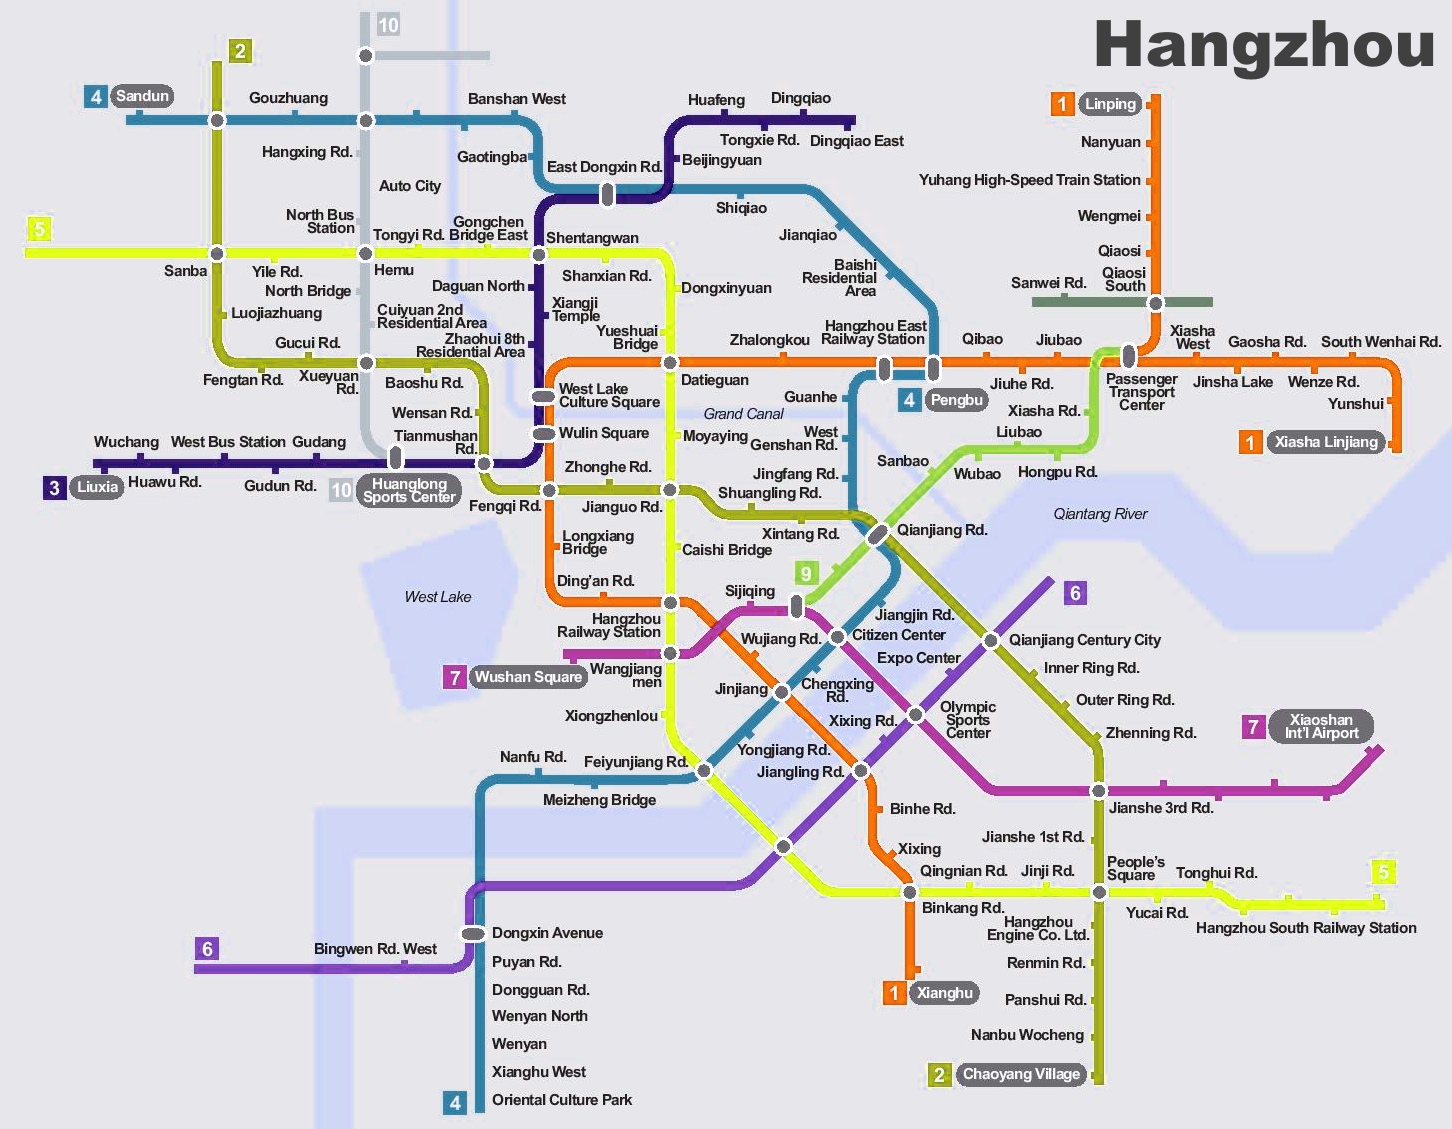 Hangzhou subway planning map